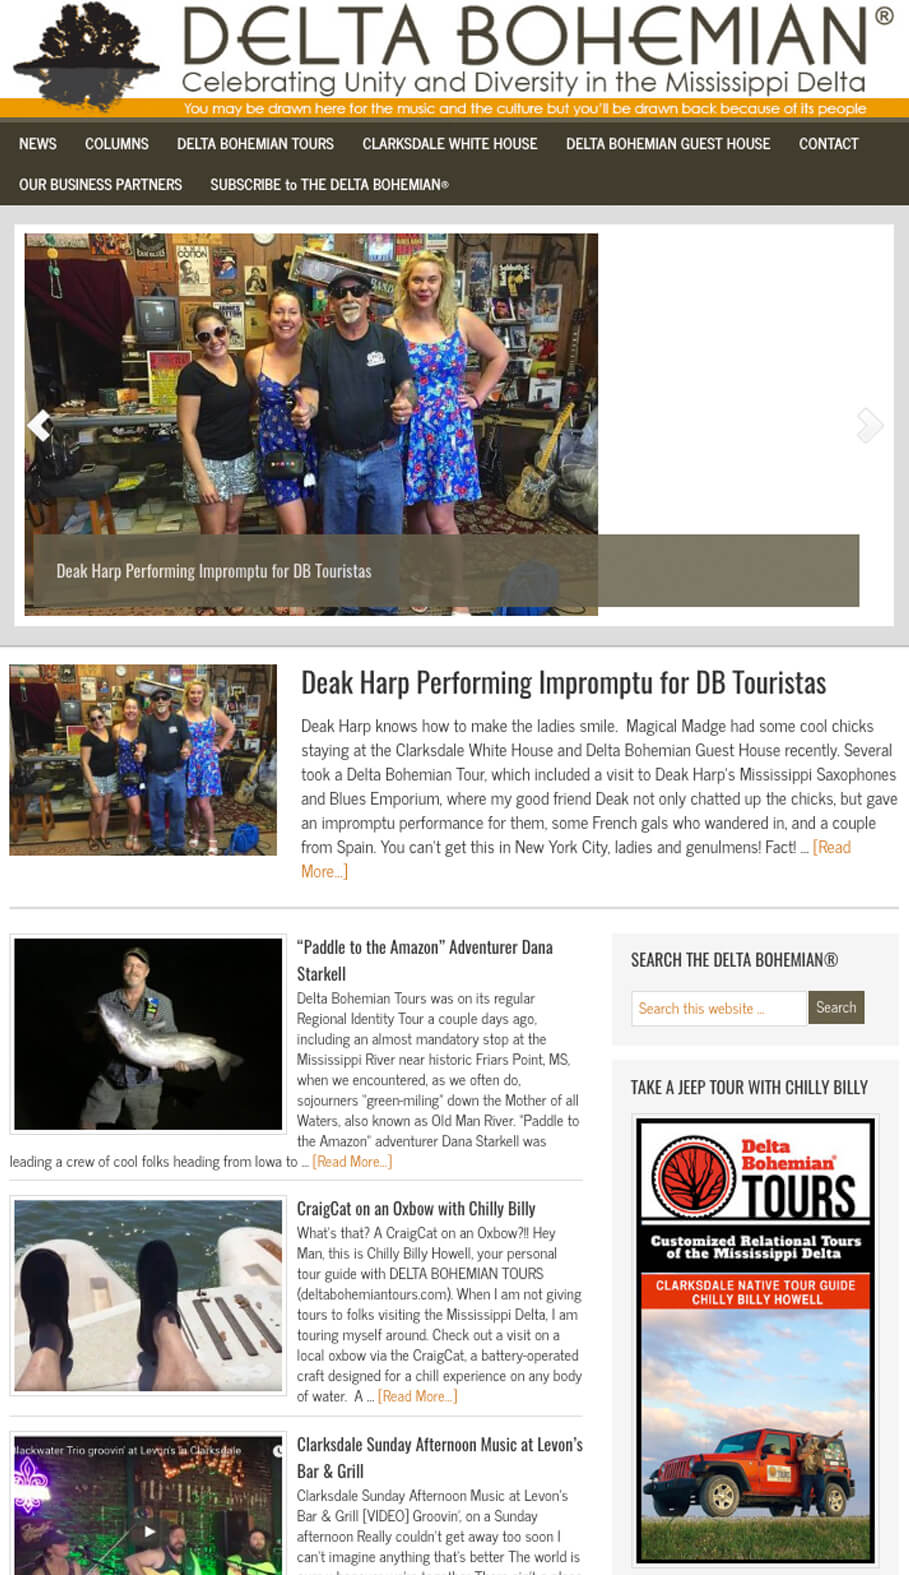 Get local Clarksdale tourism news, info, events, and more at deltabohemian.com